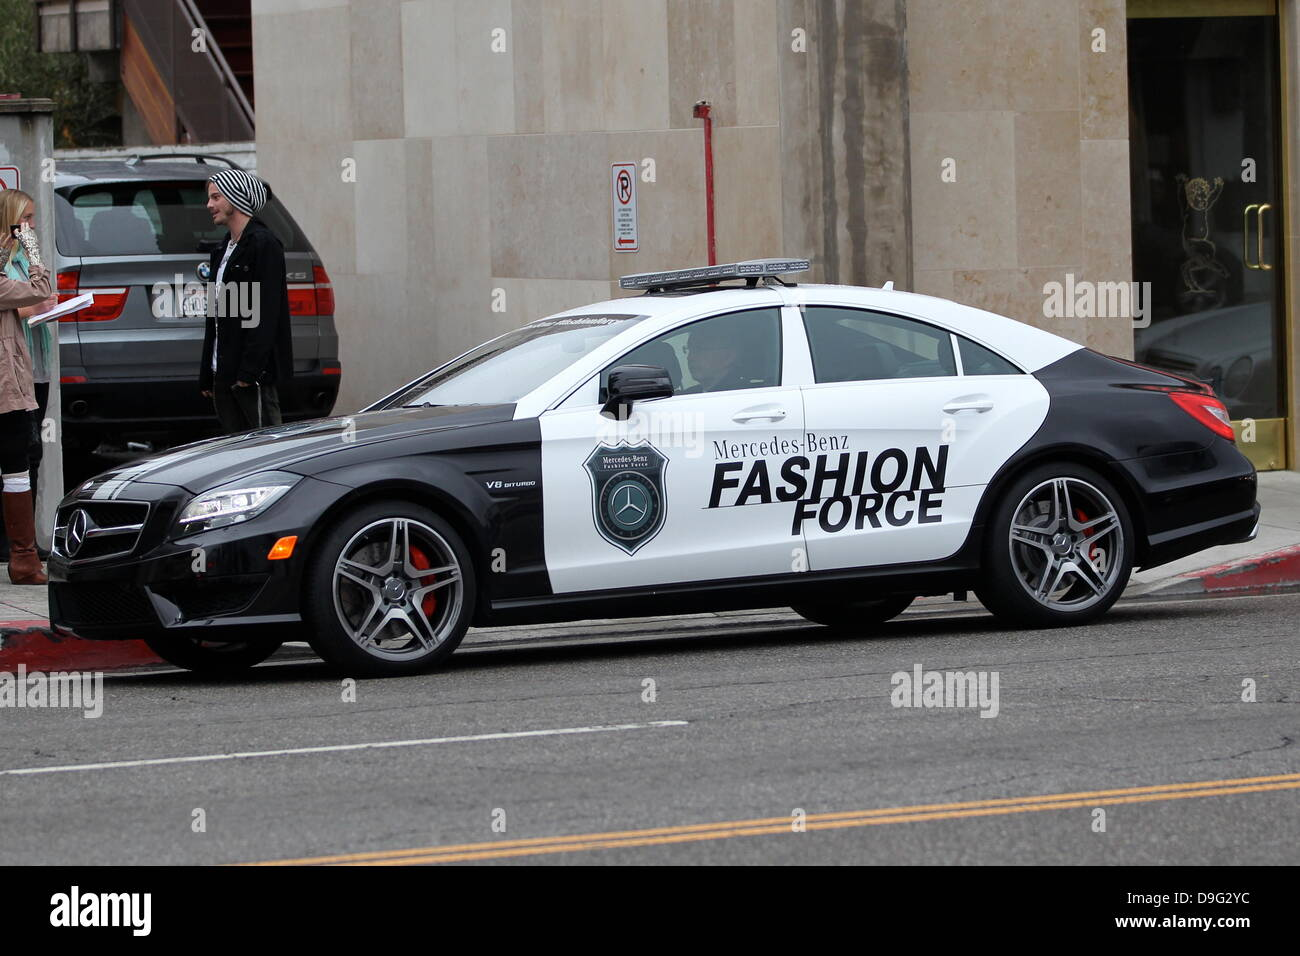 Mercedes fashion force car patrols la the mercedes benz usa mercedes fashion force car patrols la the mercedes benz usafashion force car could be seen patrolling the streets of los angeles during the academy awards thecheapjerseys Images